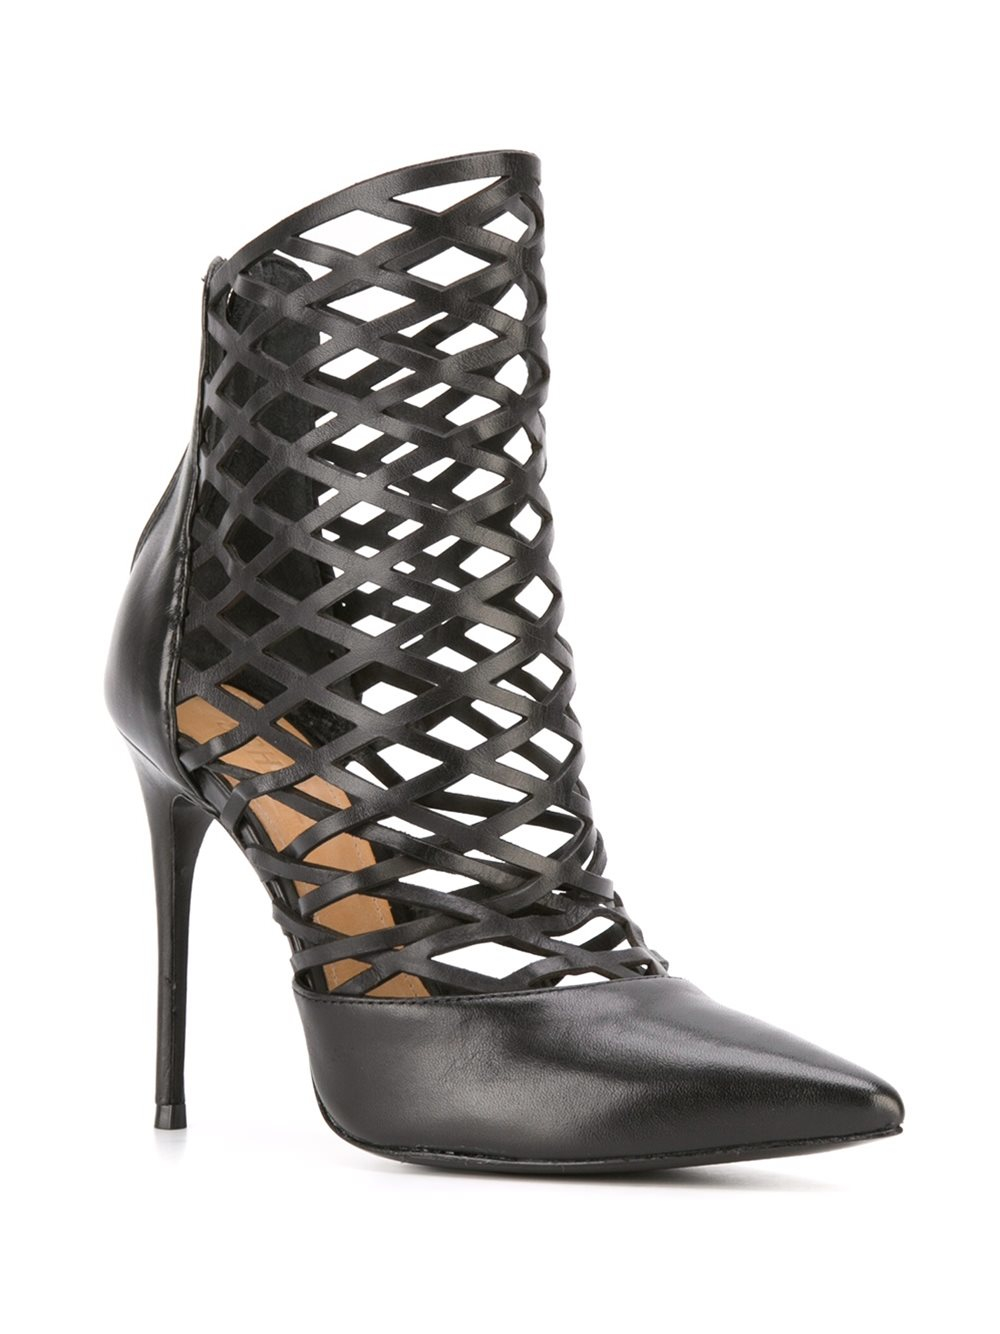 Schutz Leather Laser-cut Boots in Black (Natural)